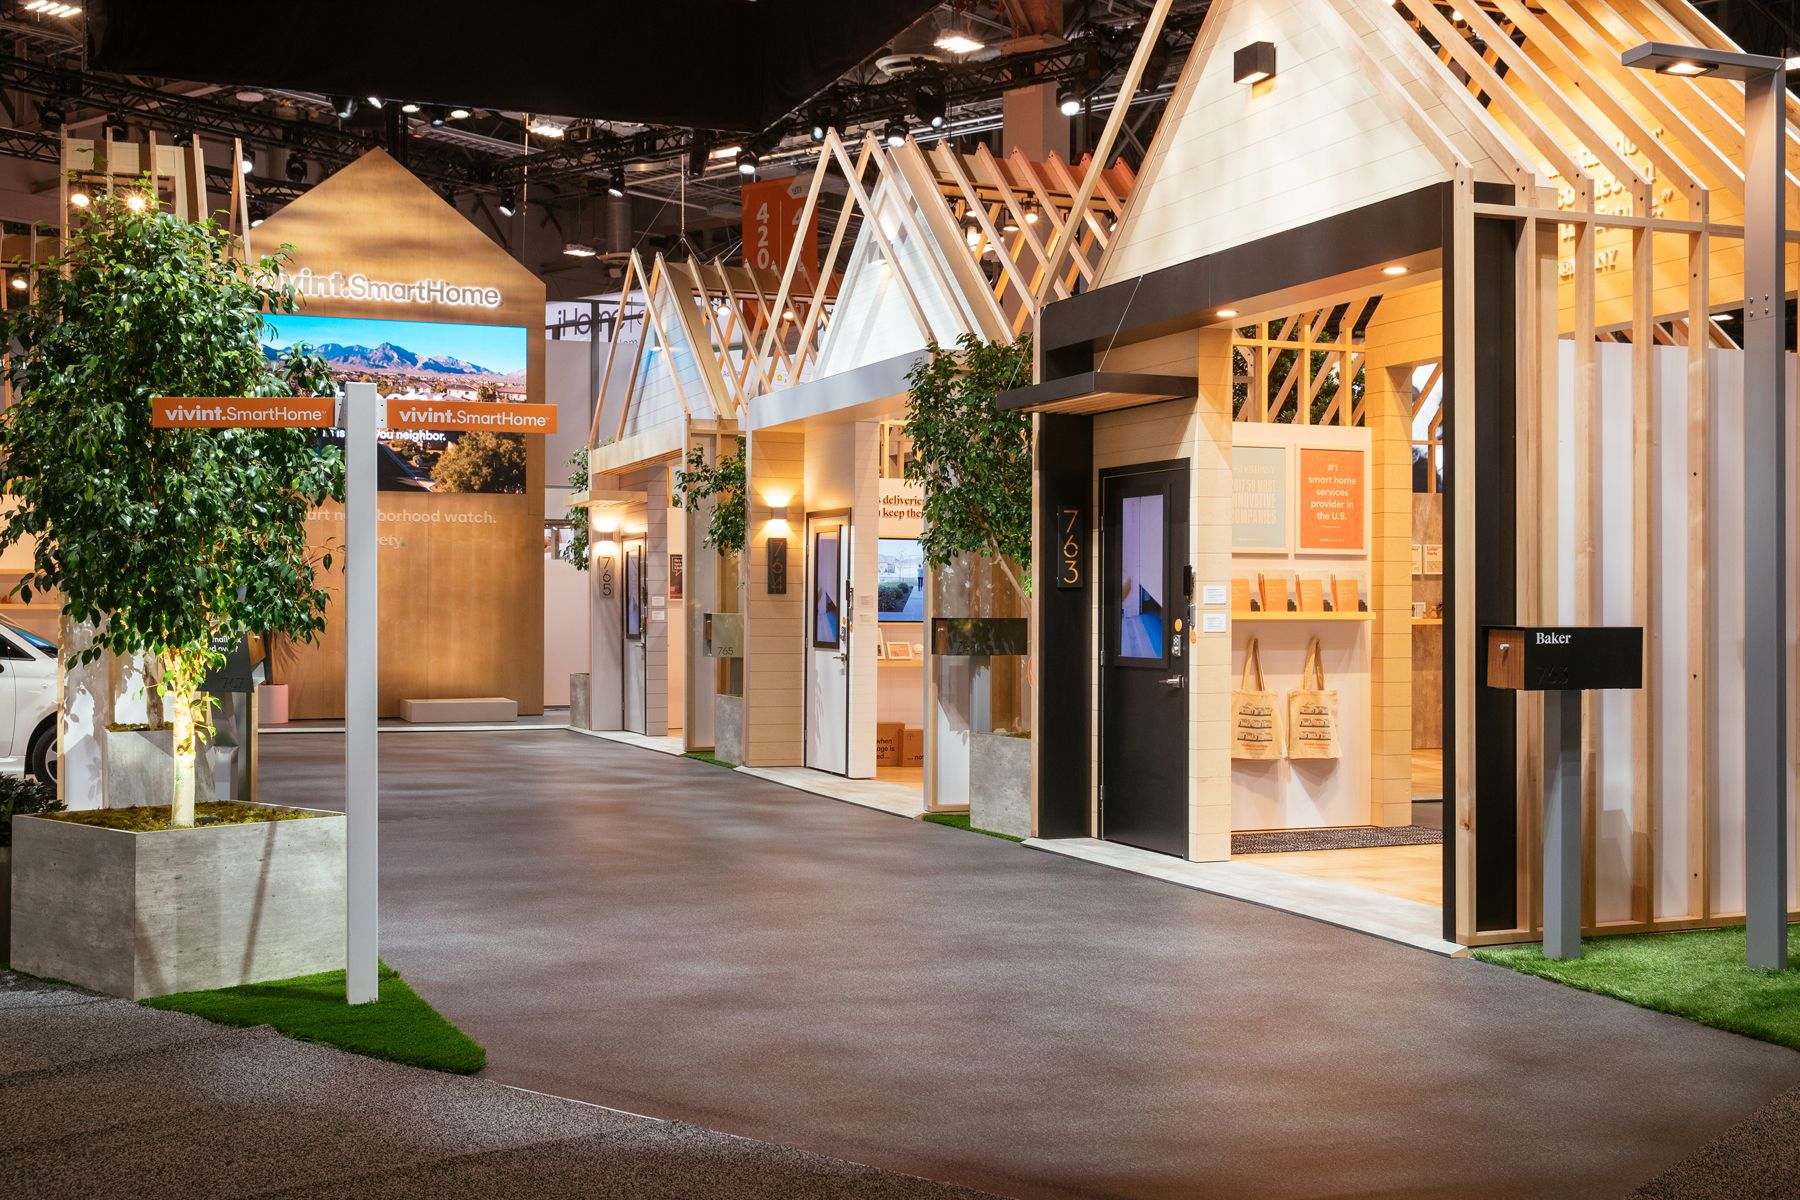 Reserve Retail Displays Iot smart home